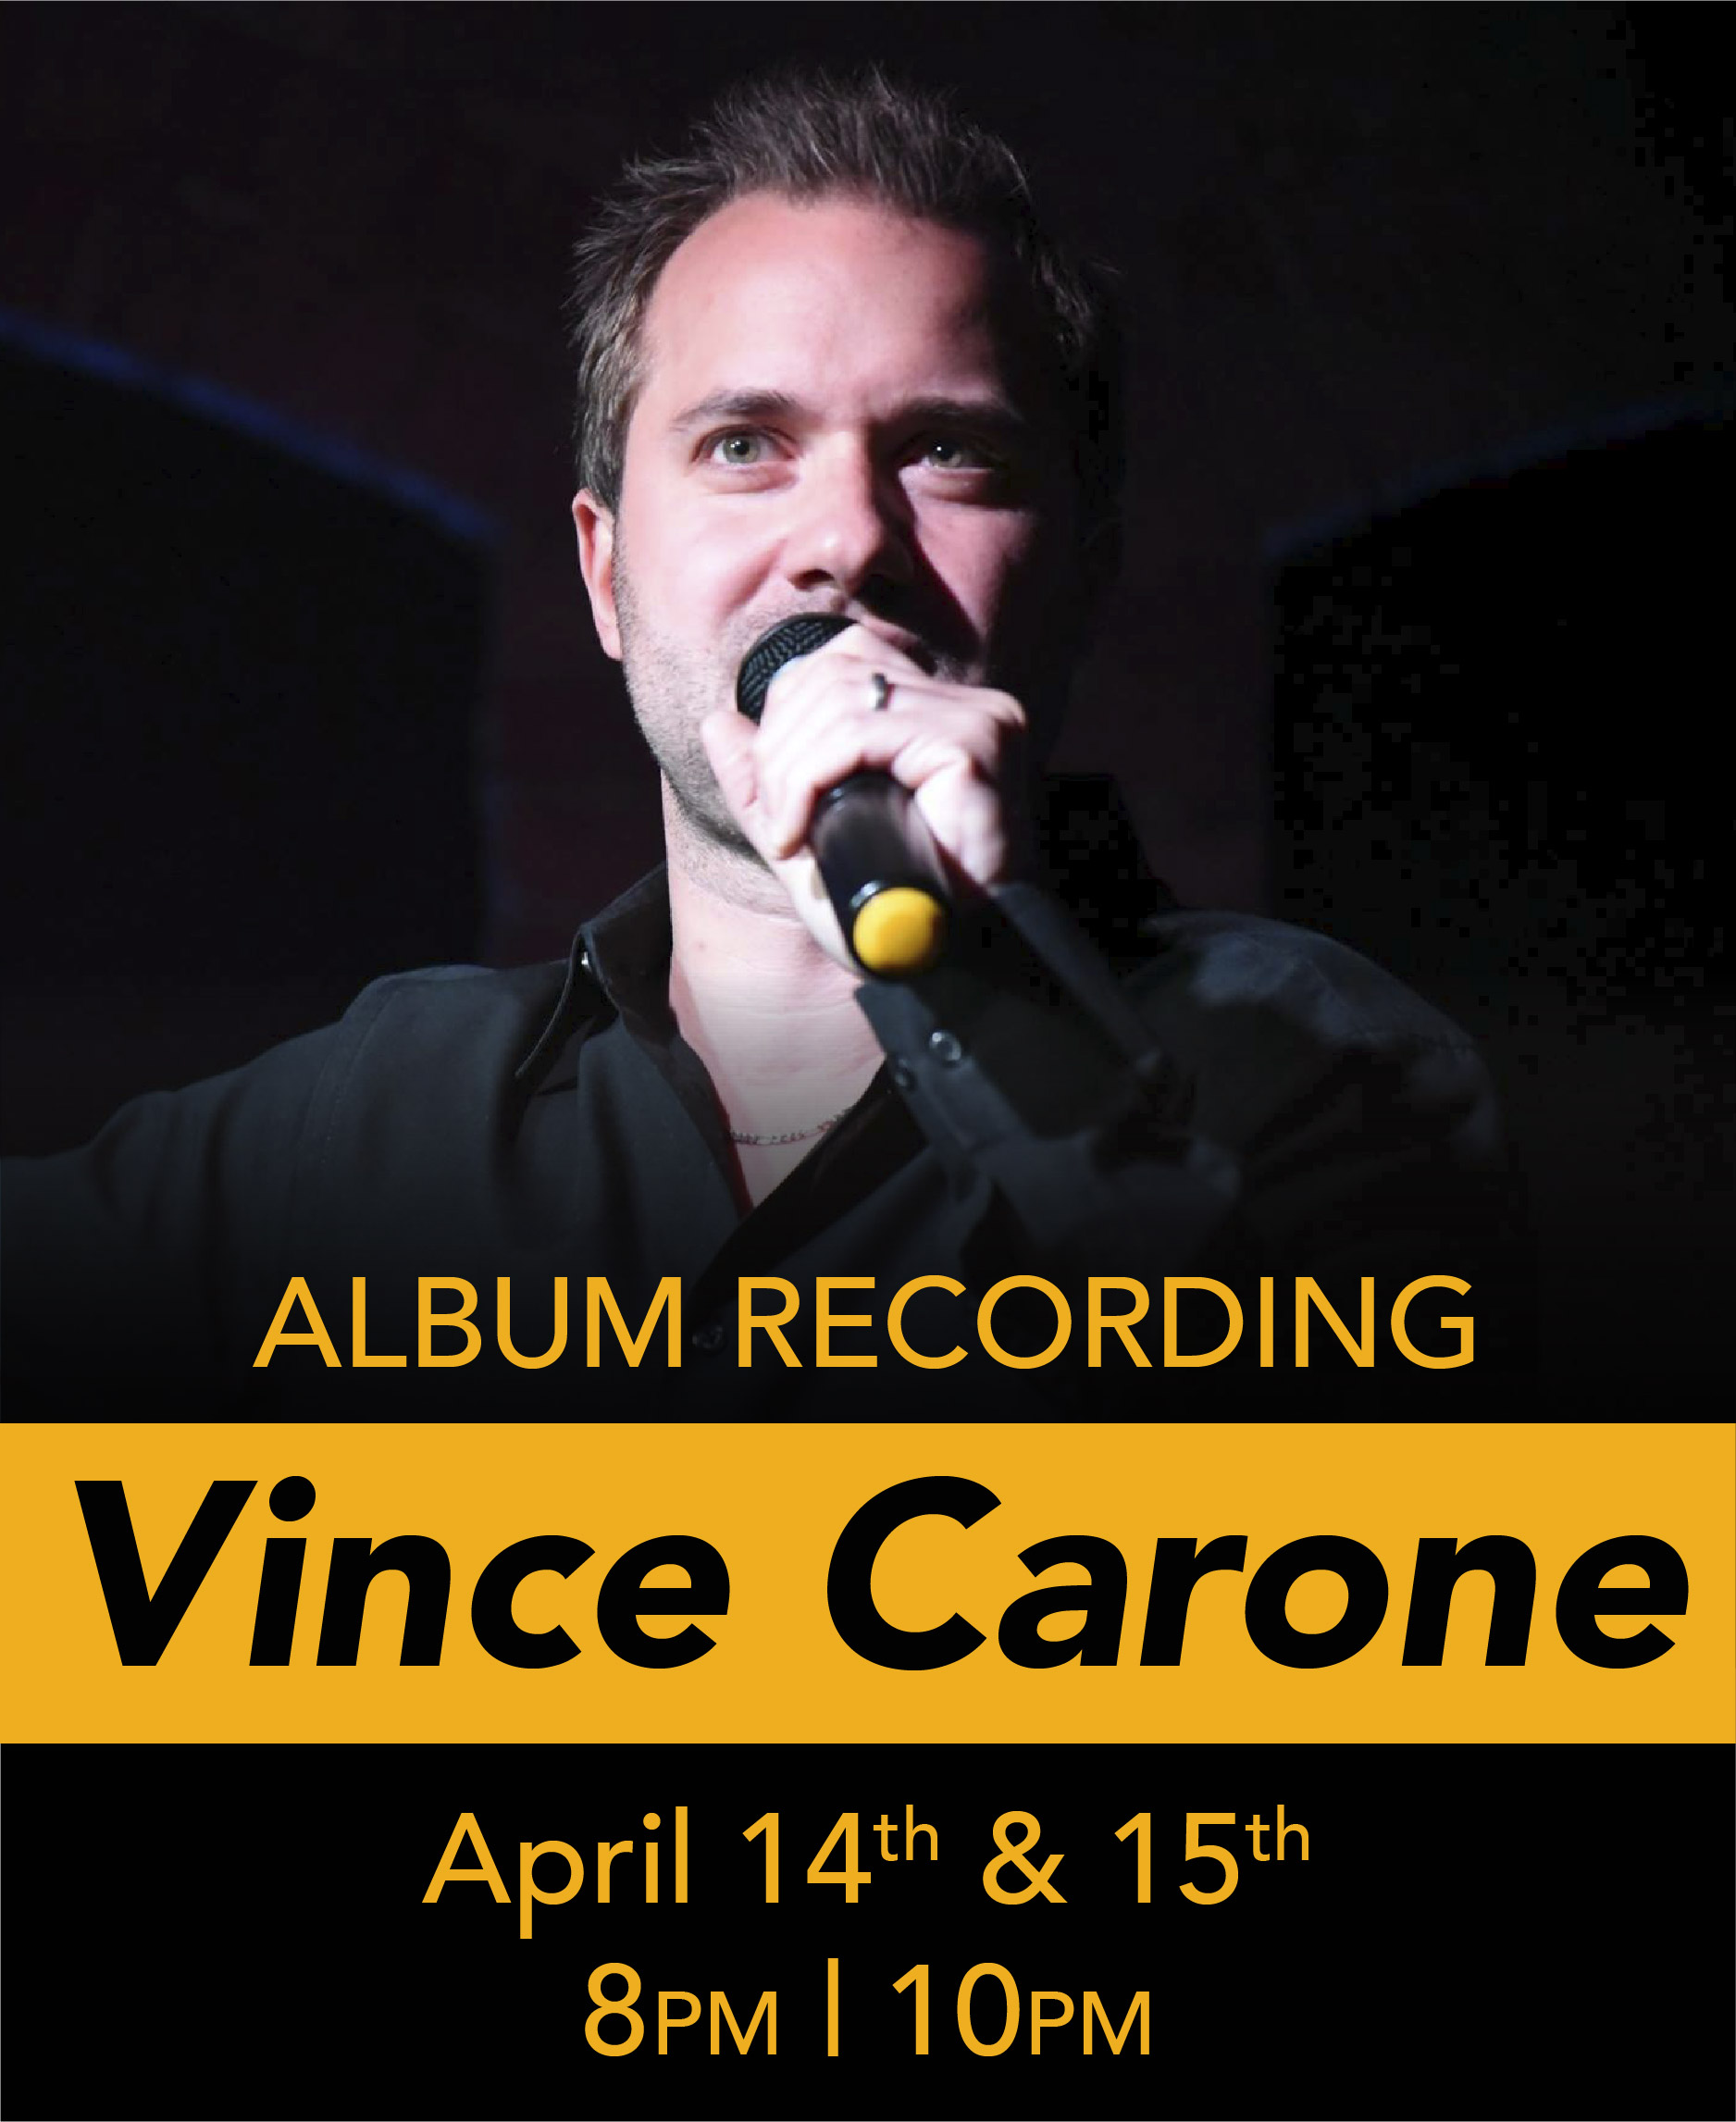 Vince Carone Album Recording @ the Shrine